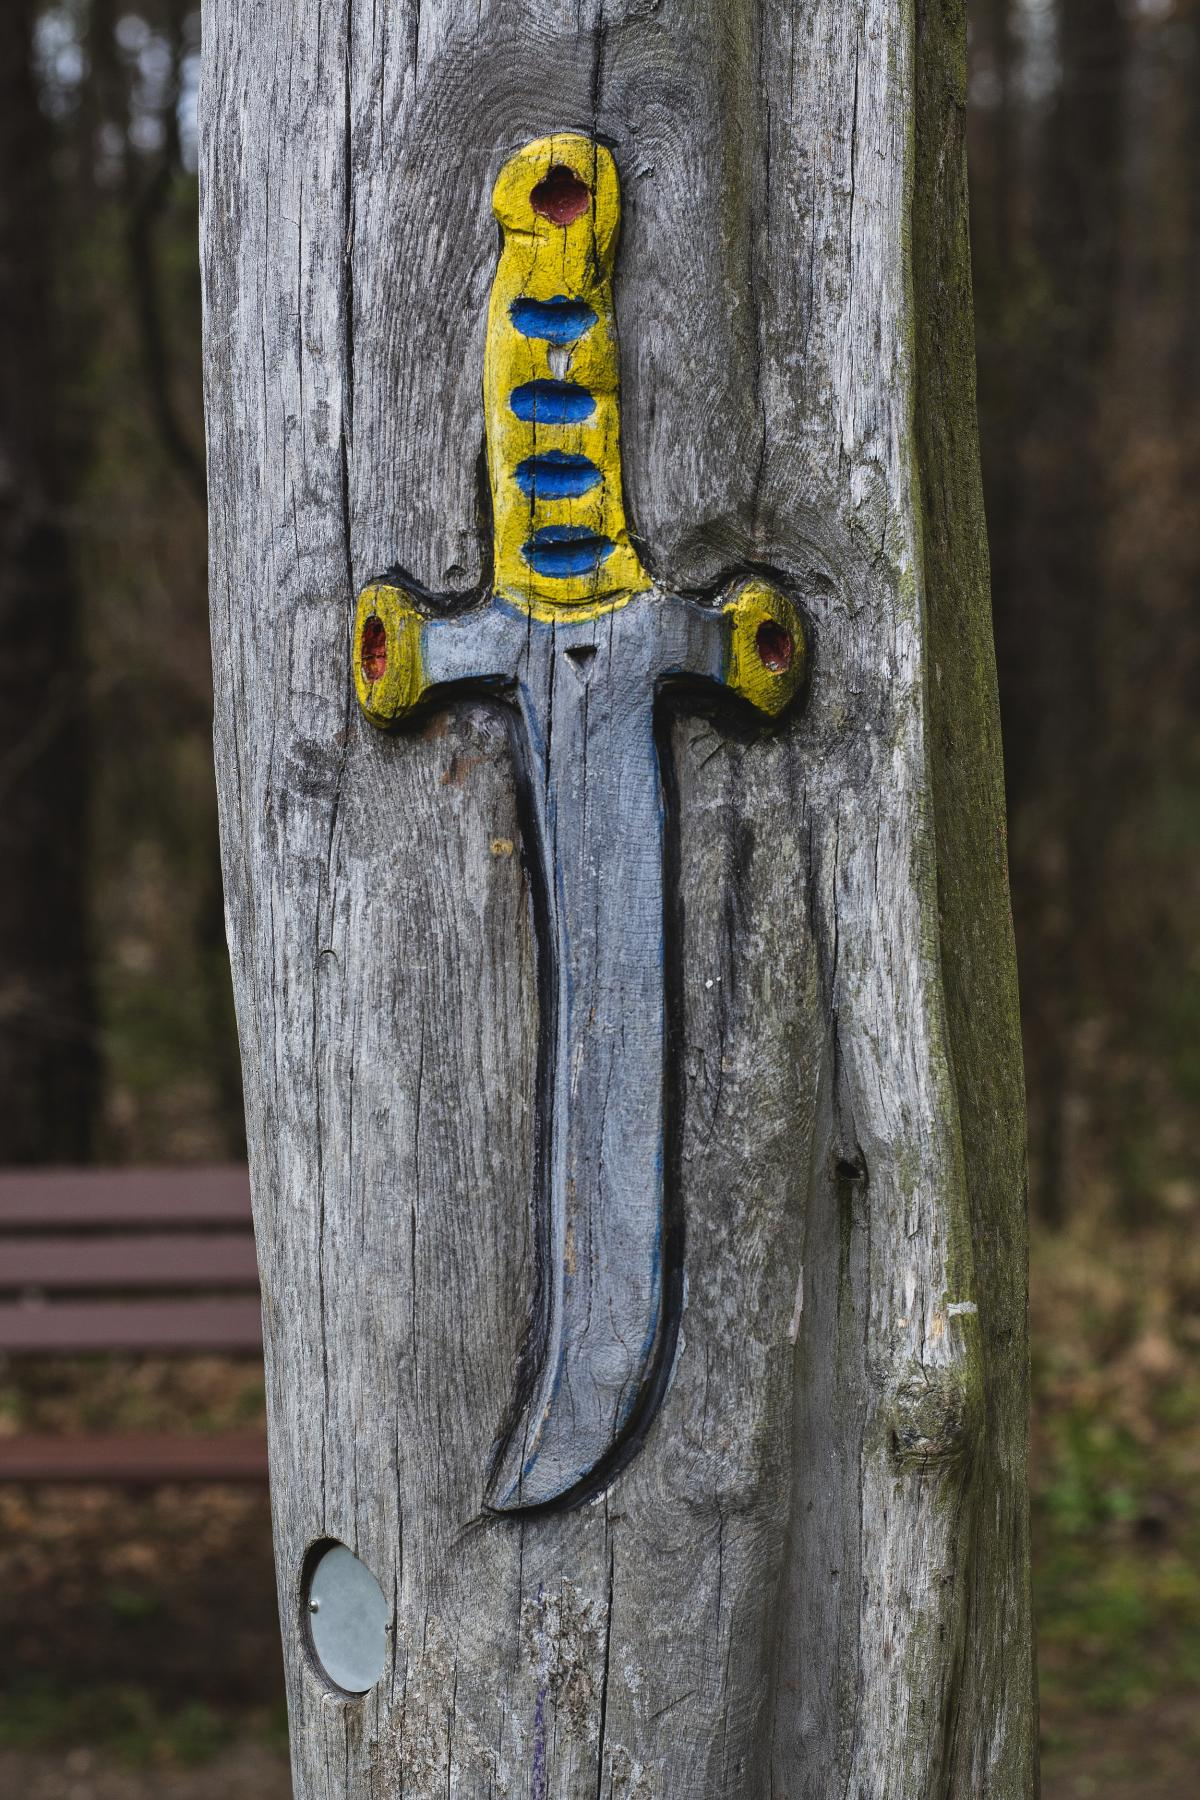 Sword carving on a tree #391504